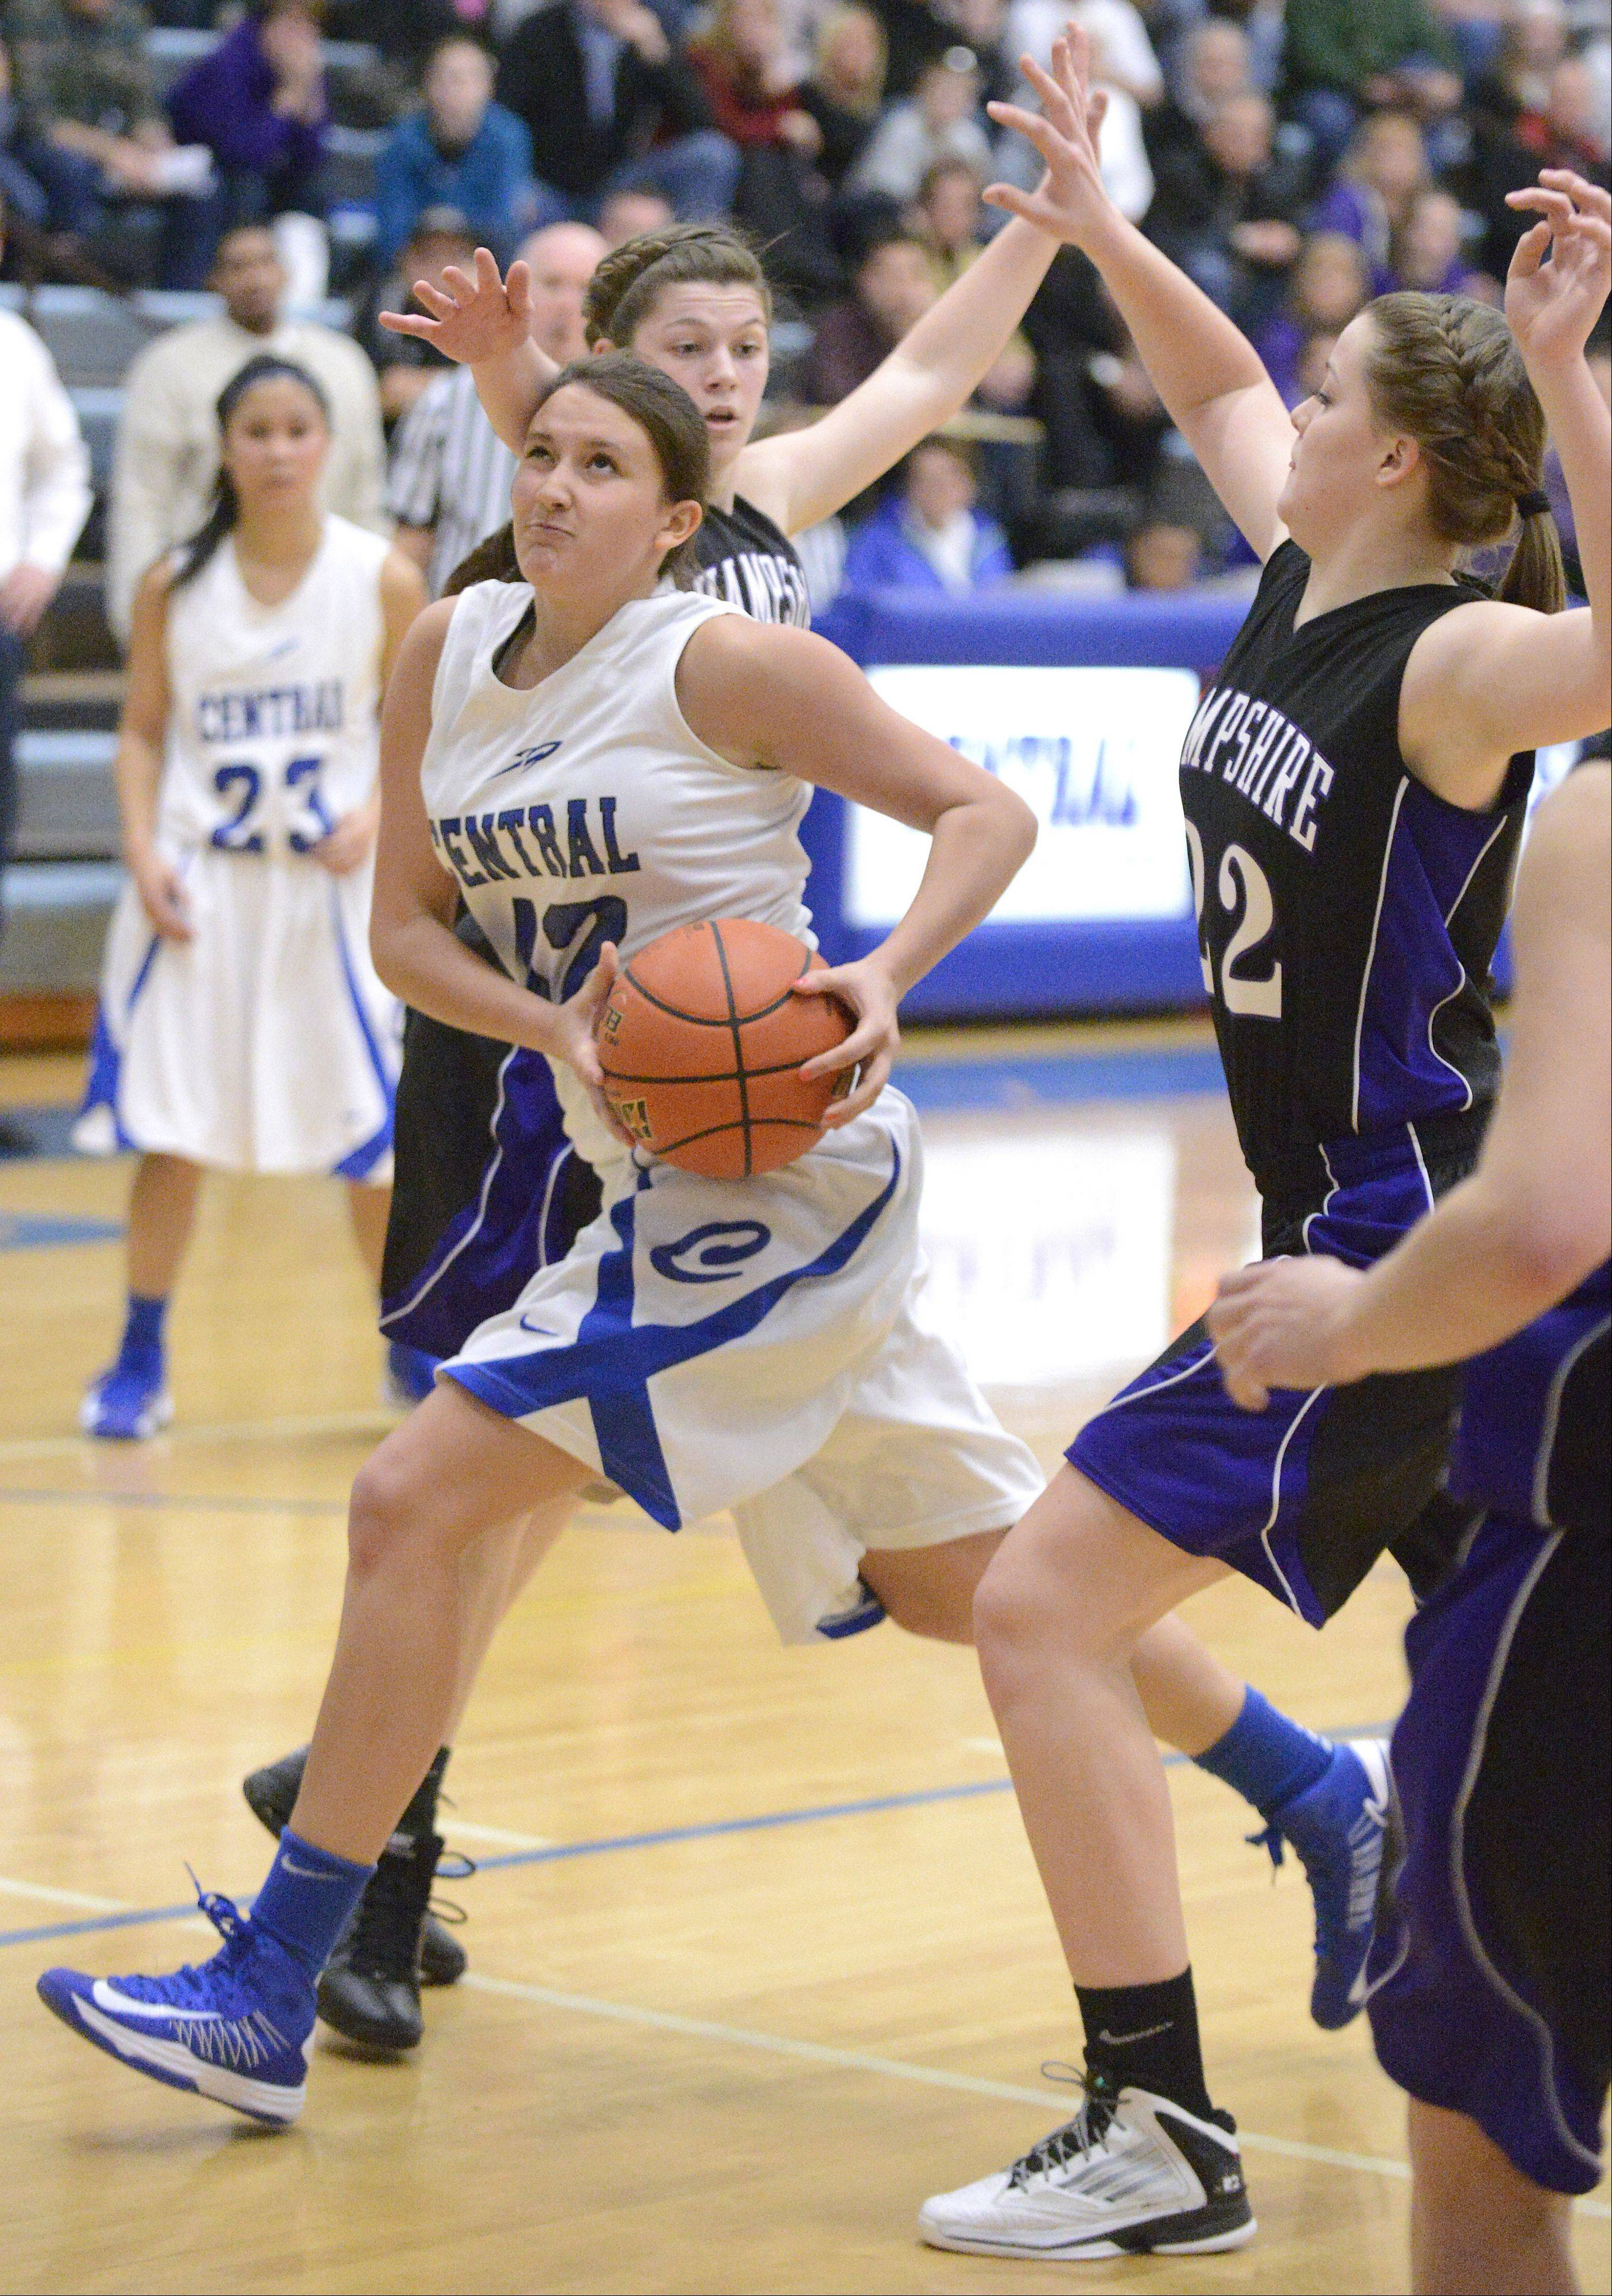 Burlington Central's Alison Colby plows past a block by Hampshire's Tricia Dumoulin in the fourth quarter.